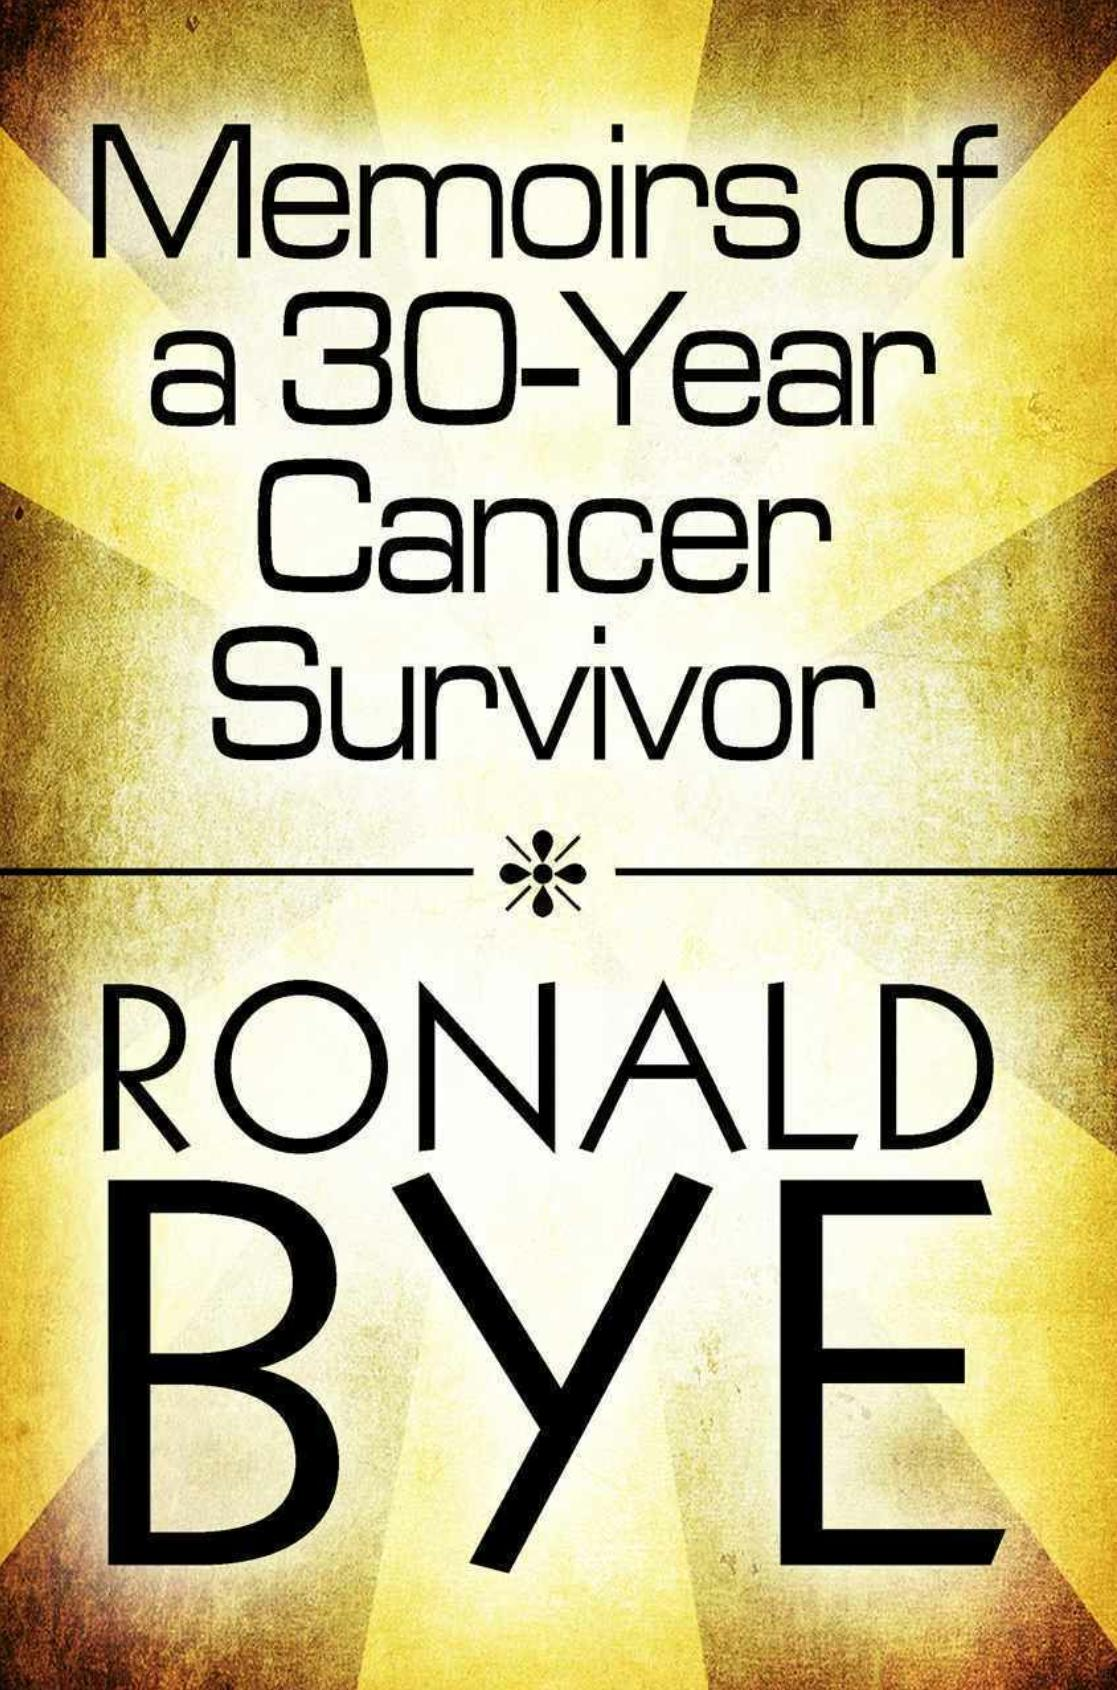 You can pickup Ron's memoir on Amazon by clicking on the link.